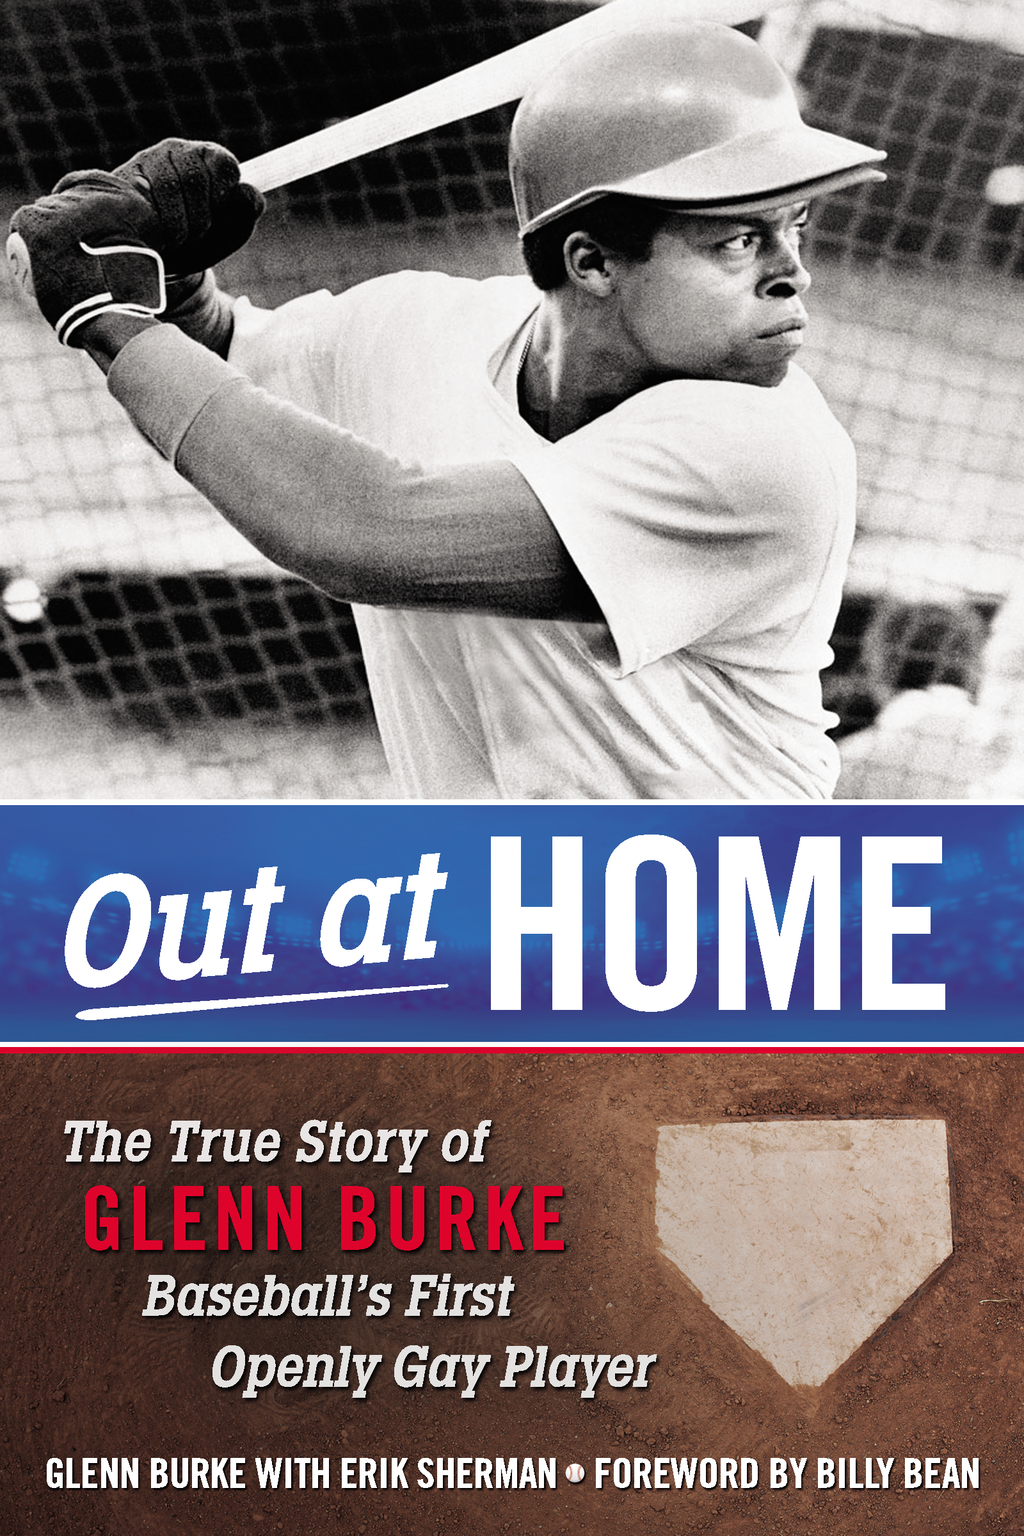 Out at Home The True Story of Glenn Burke,  Baseball's First Openly Gay Player